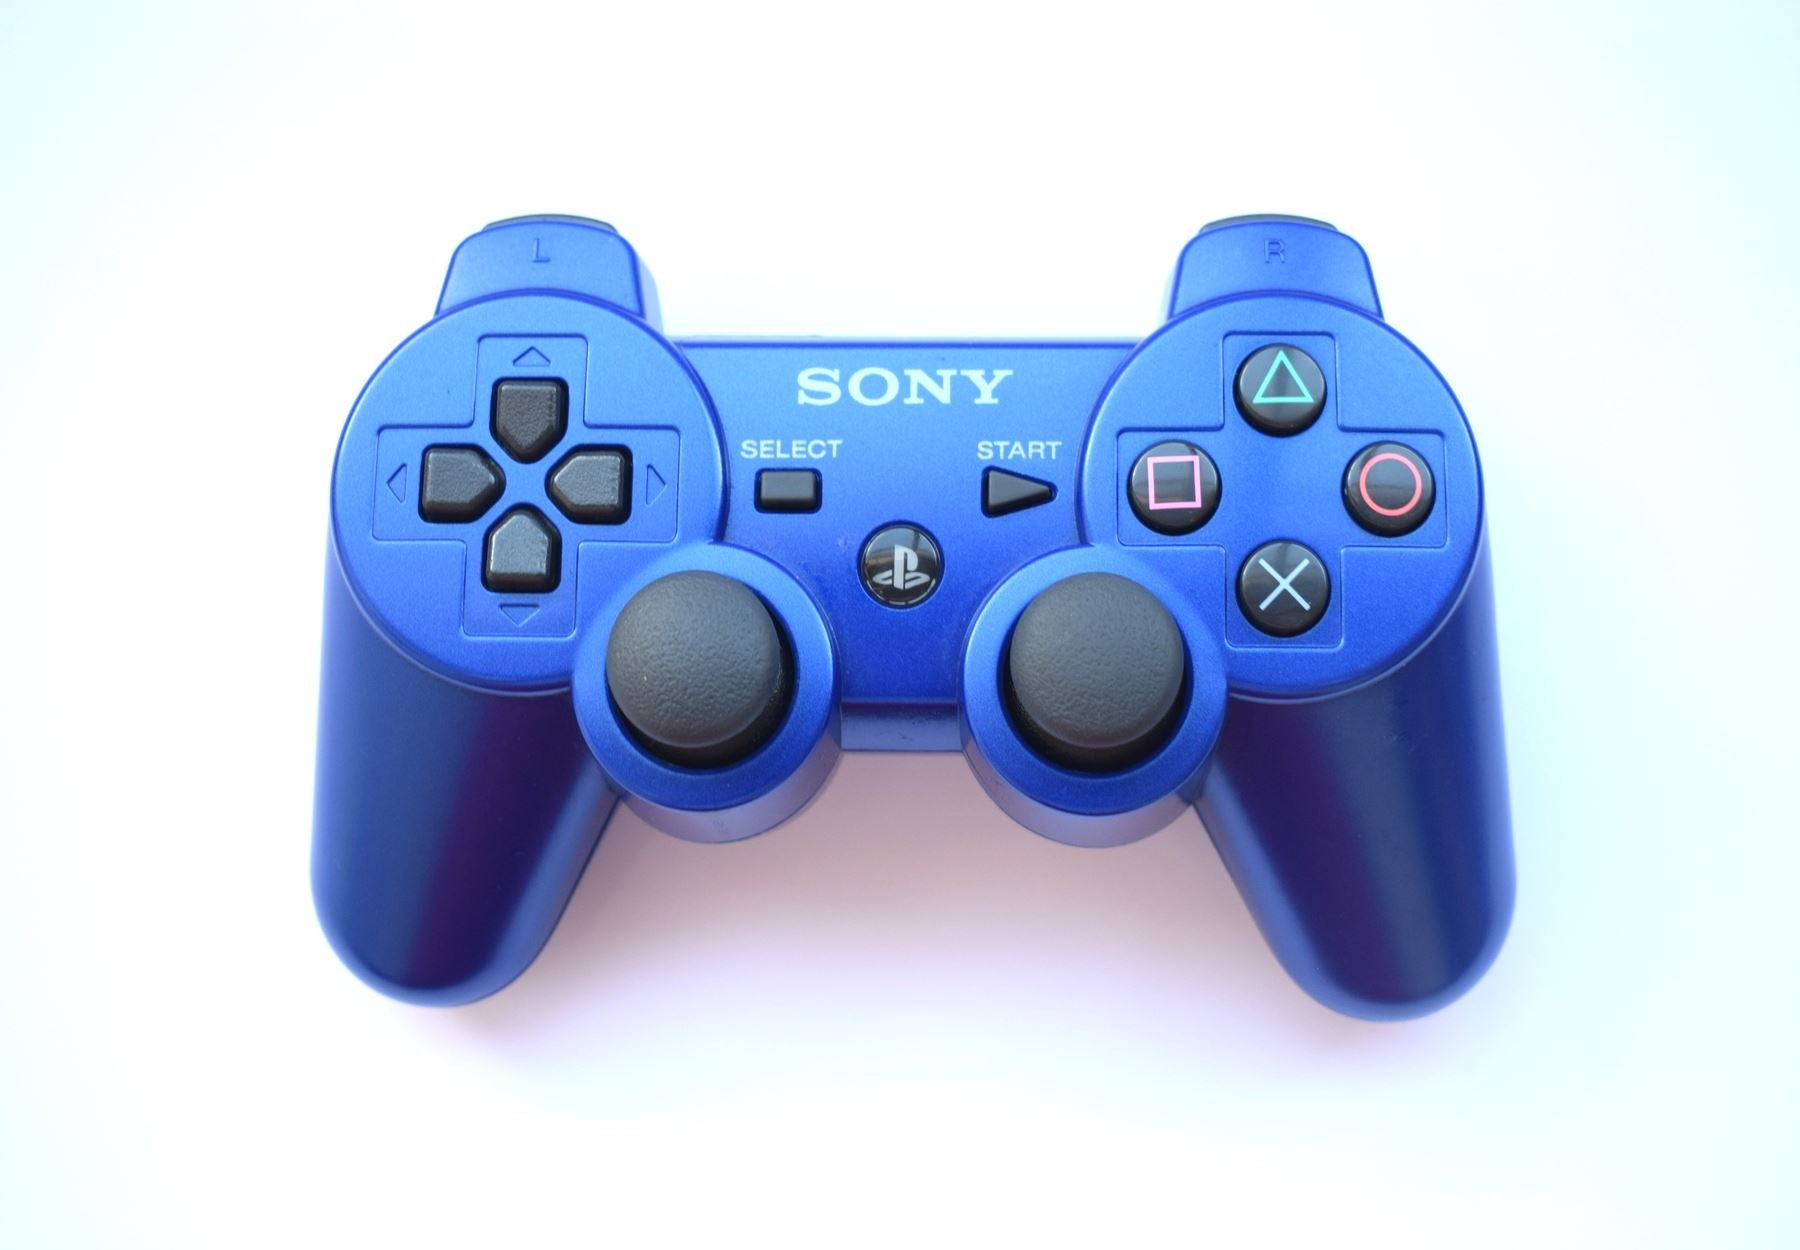 Official-Original-Sony-Playstation-Dual-Shock-3-PS3-Controller-Multiple-Colours thumbnail 7